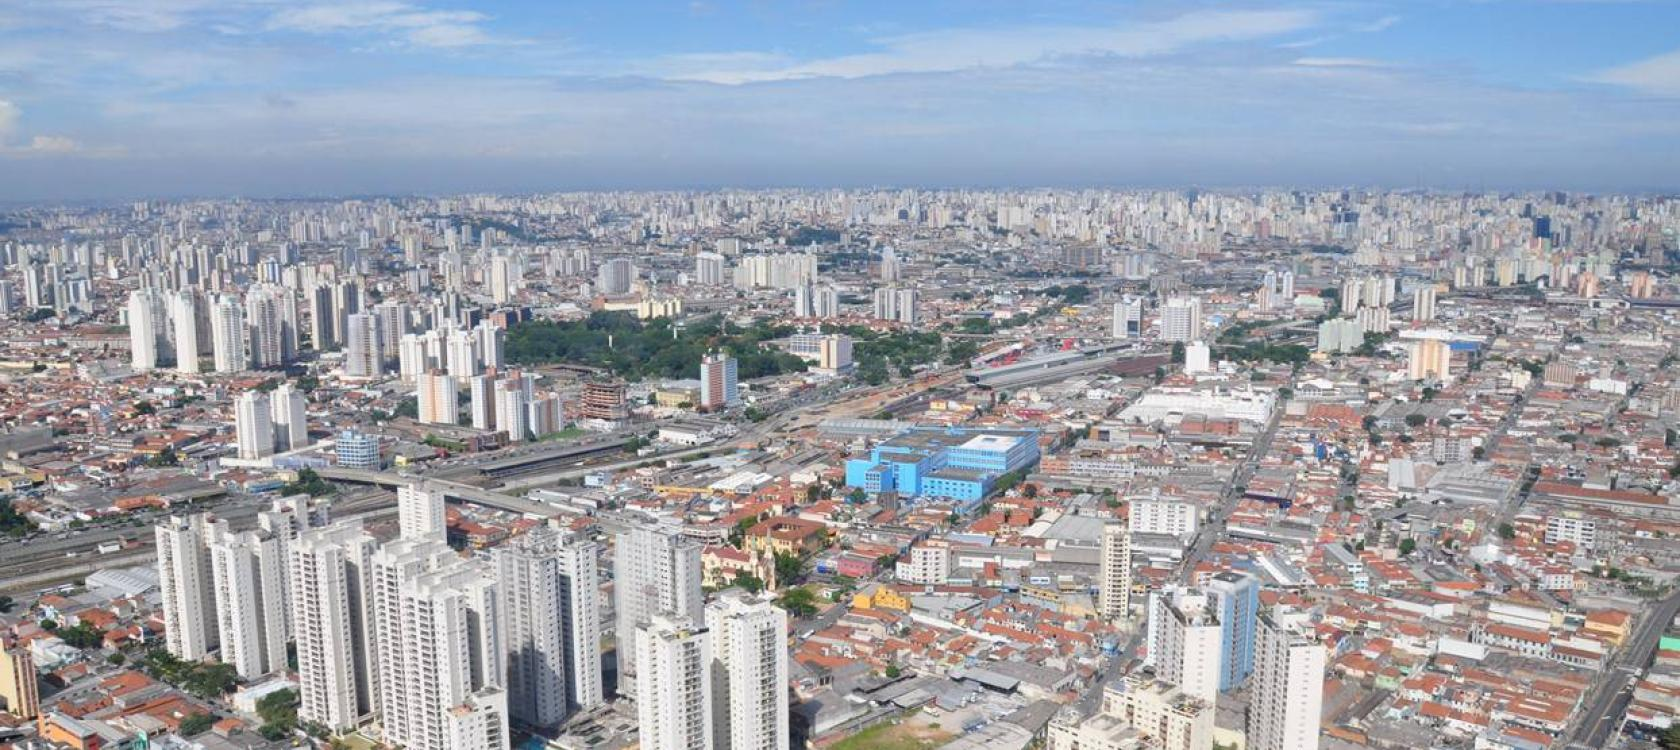 city of Sao Paulo, buildings, urban development, Brazil